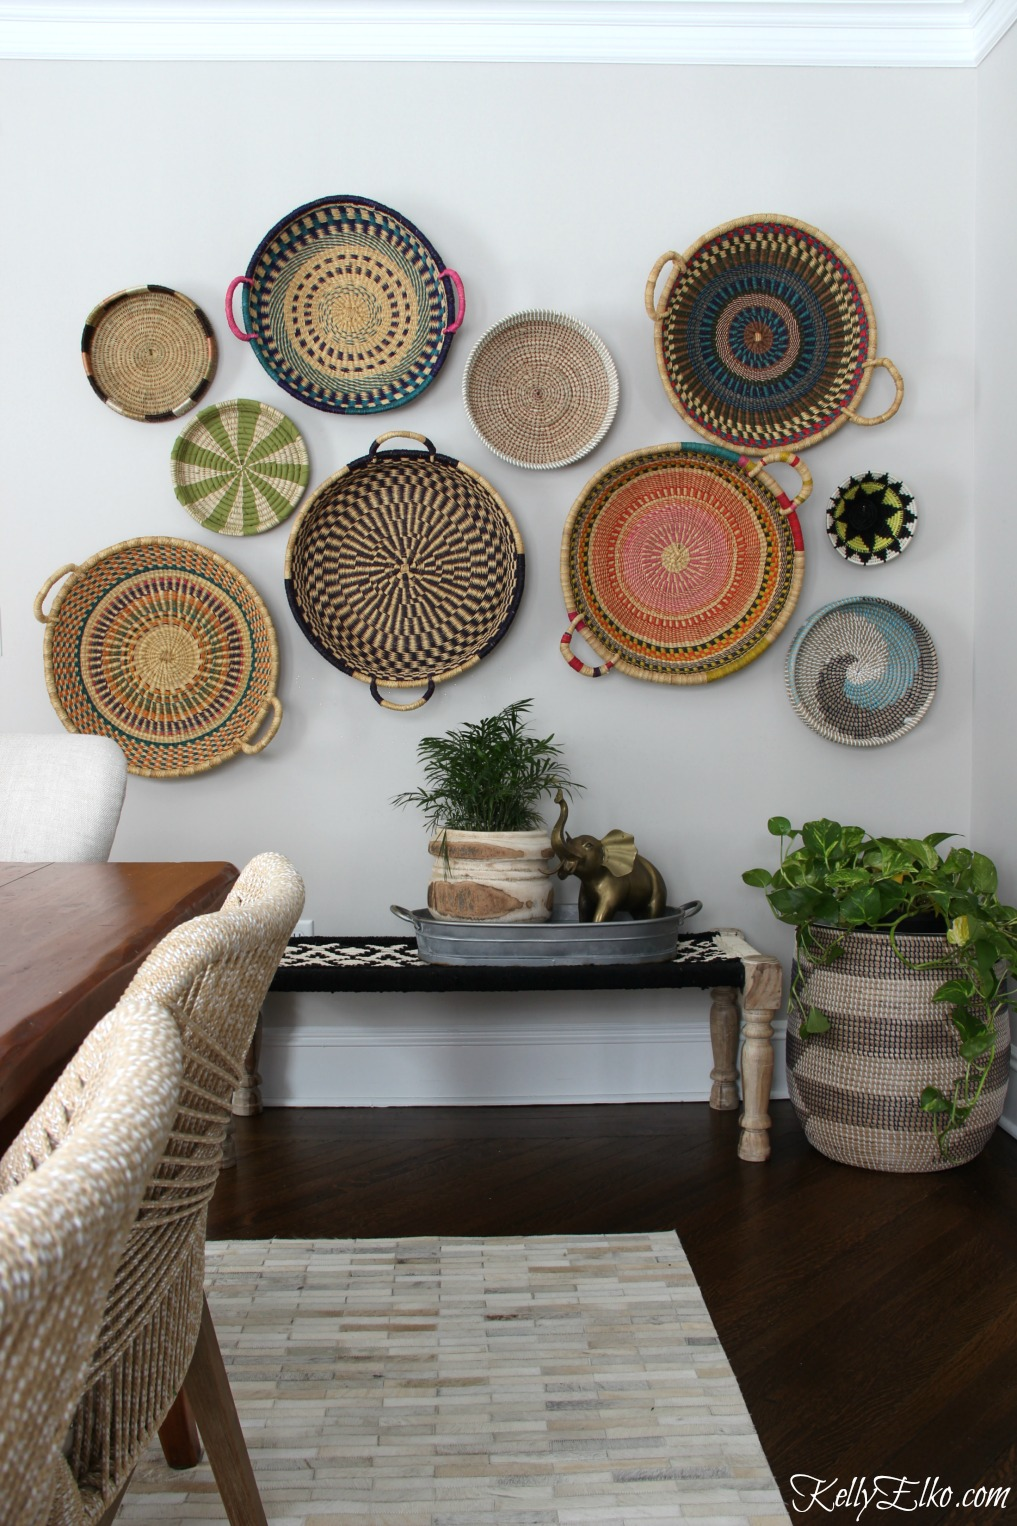 Basket Gallery Wall - love this colorful, eclectic, hand woven African basket wall and her unique way to hang them! kellyelko.com #basket #basketwall #gallerywall #bohodecor #bohemiandecor #eclecticdecor #vintagedecor #colorfuldecor #walldecor #diydecor